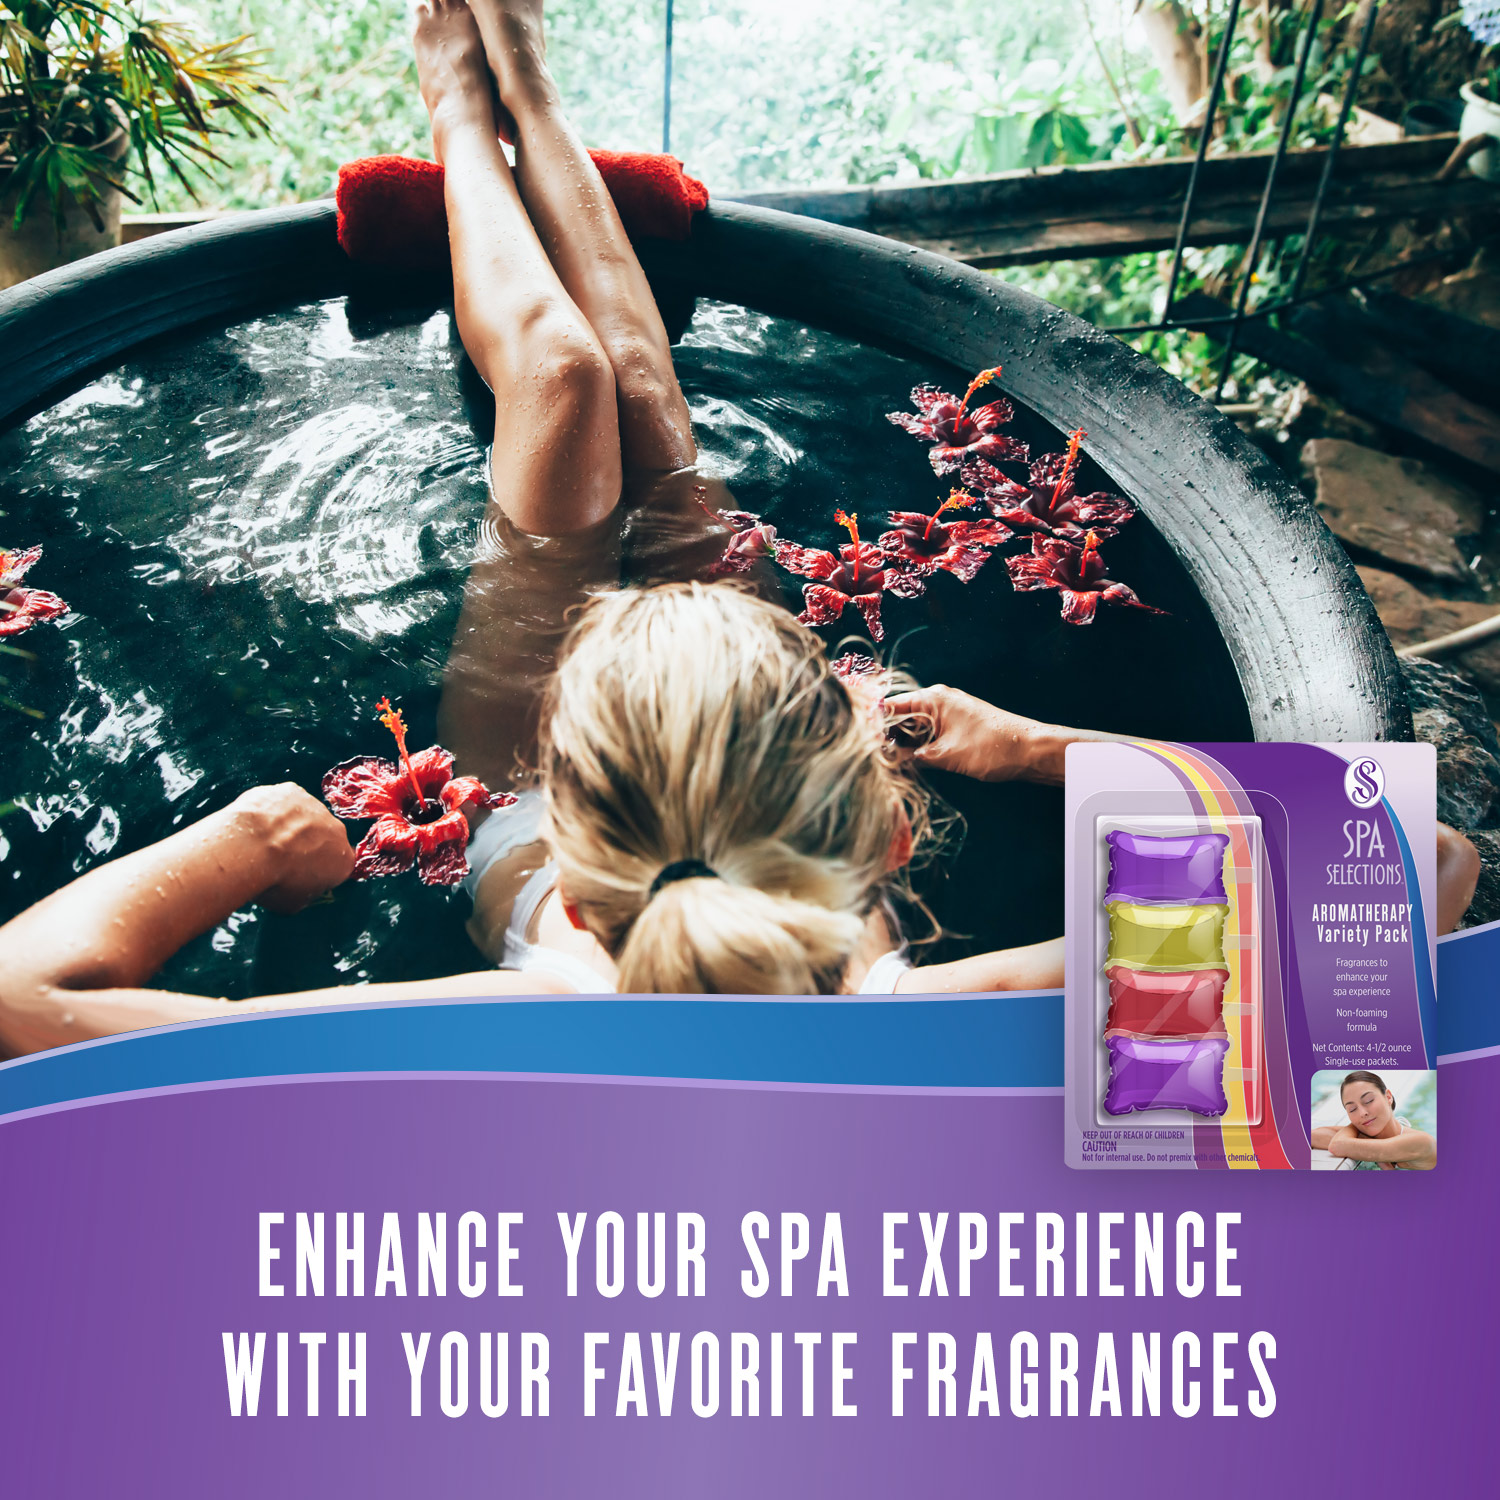 Woman enjoying hot tub overlooking a forest. Enhance your spa experience with aromatherapy from Spa Selections.